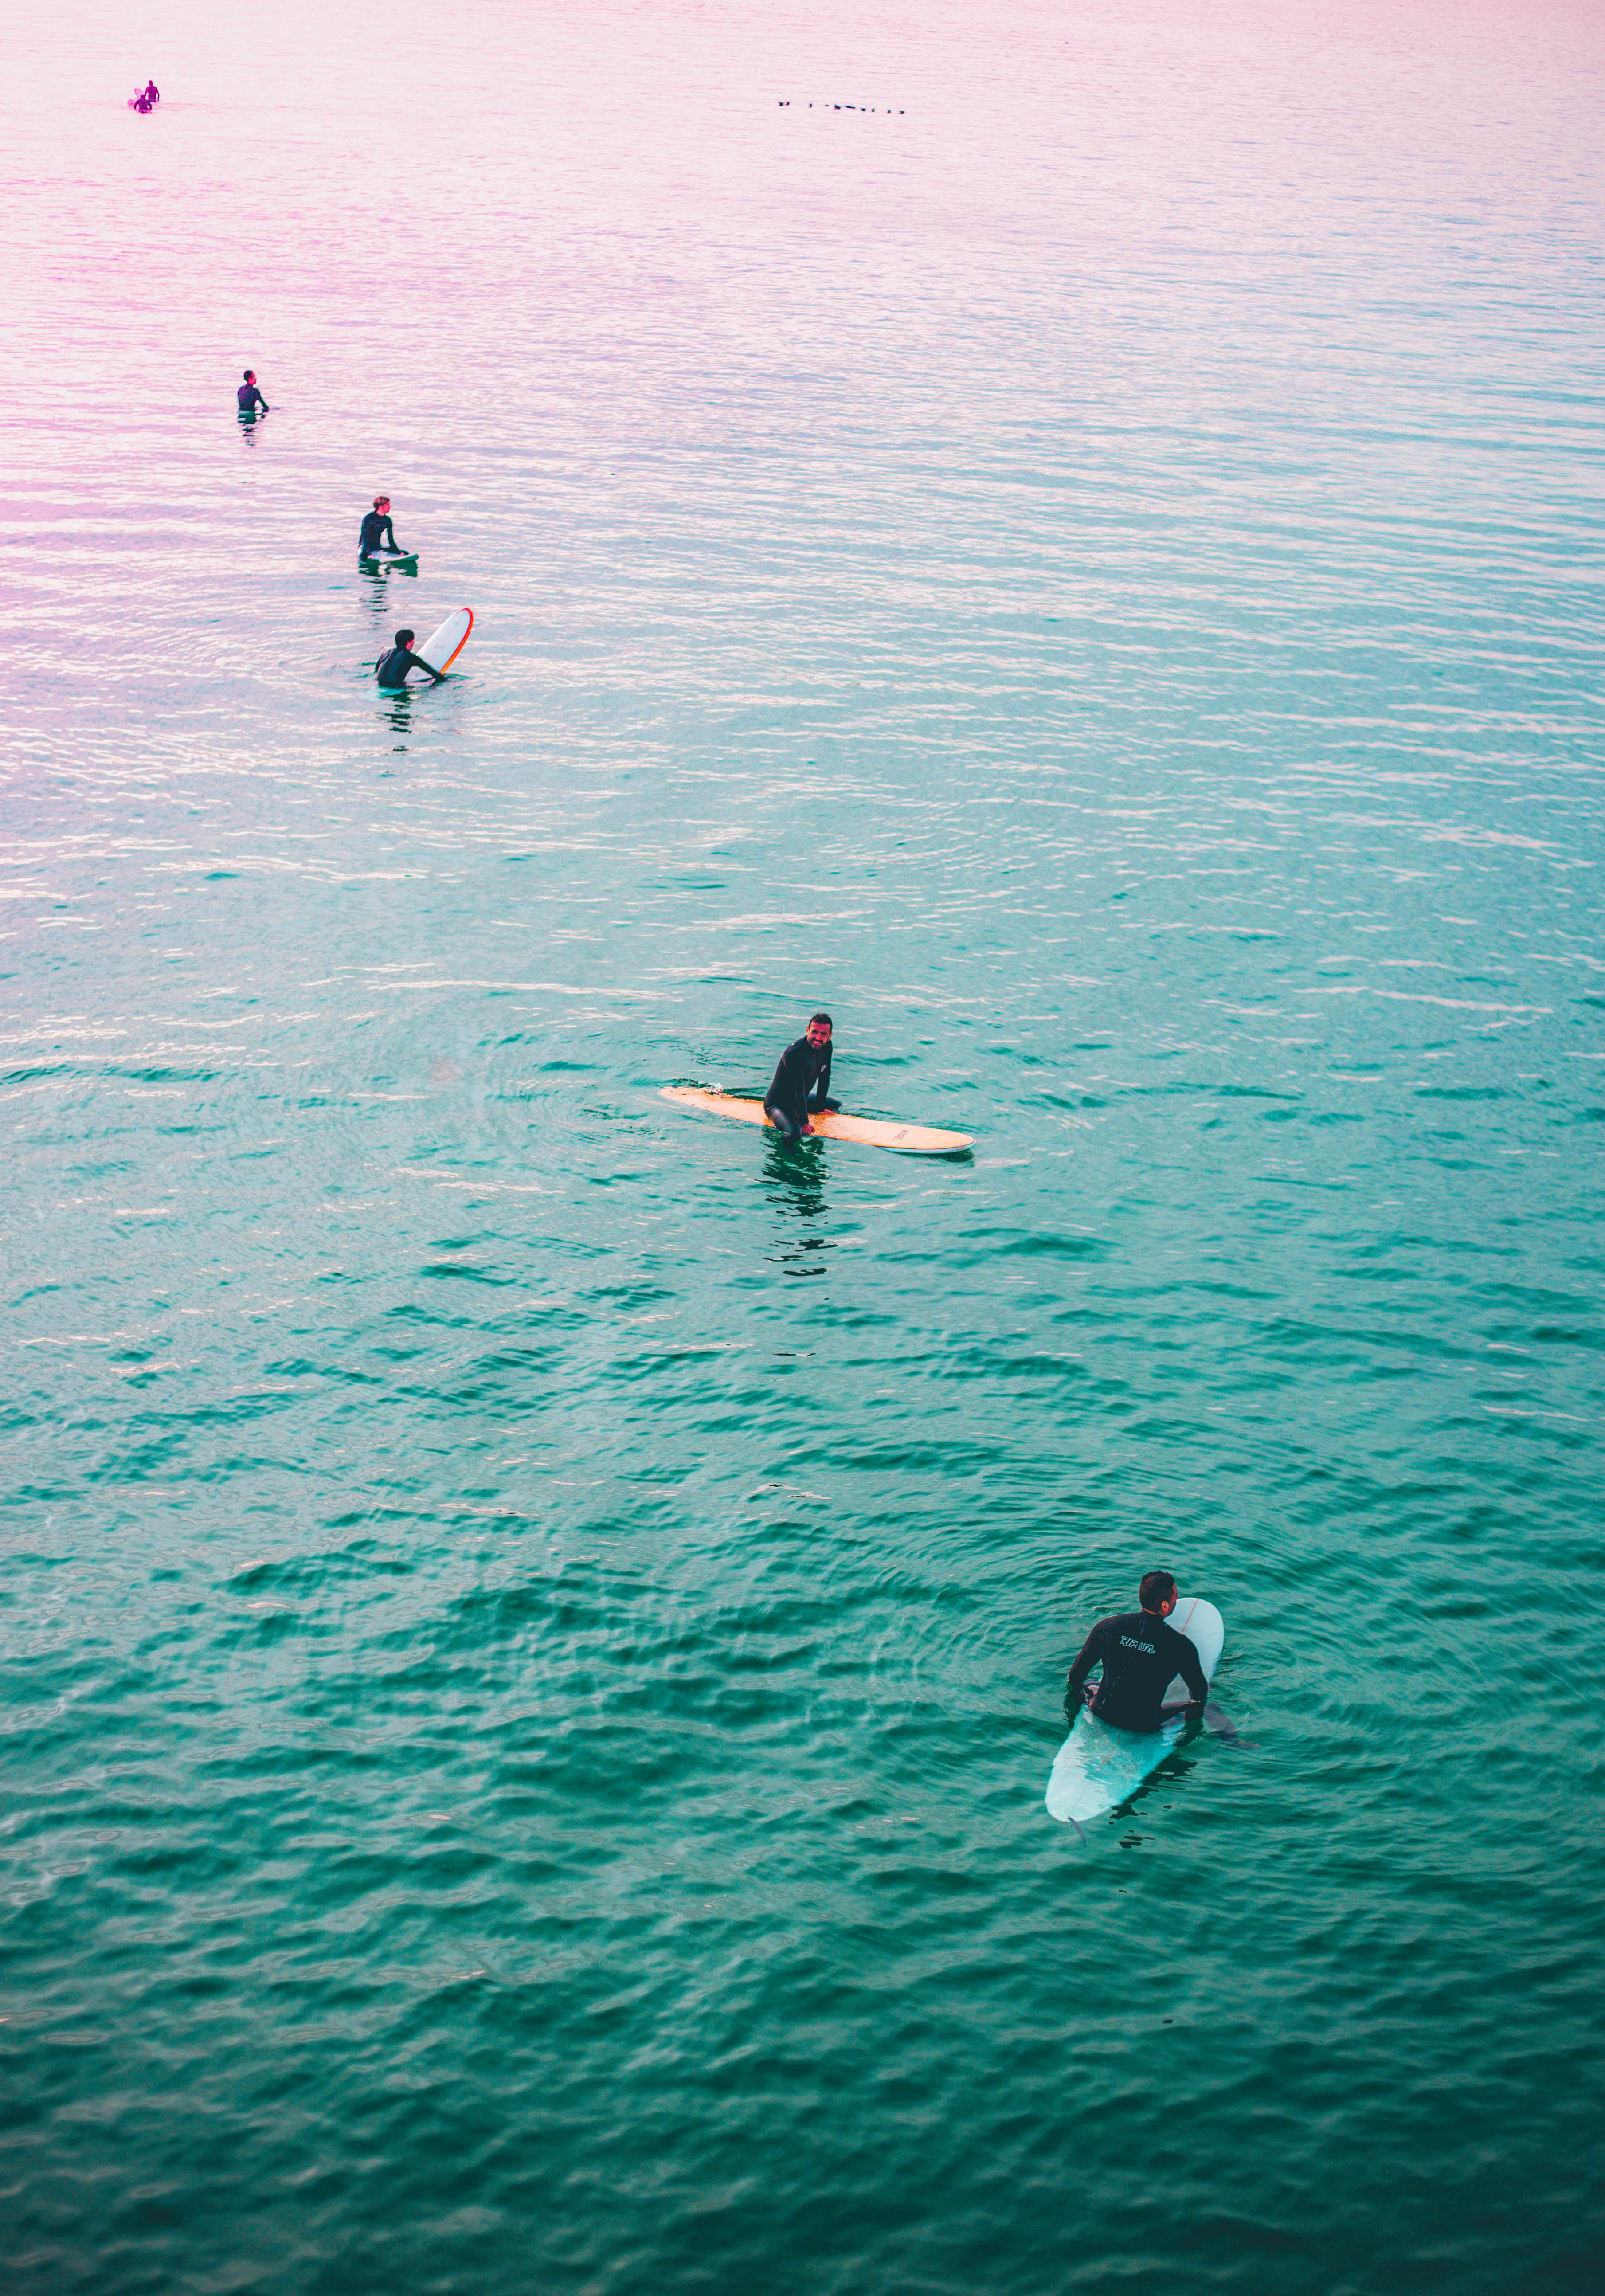 five people holding surfboards